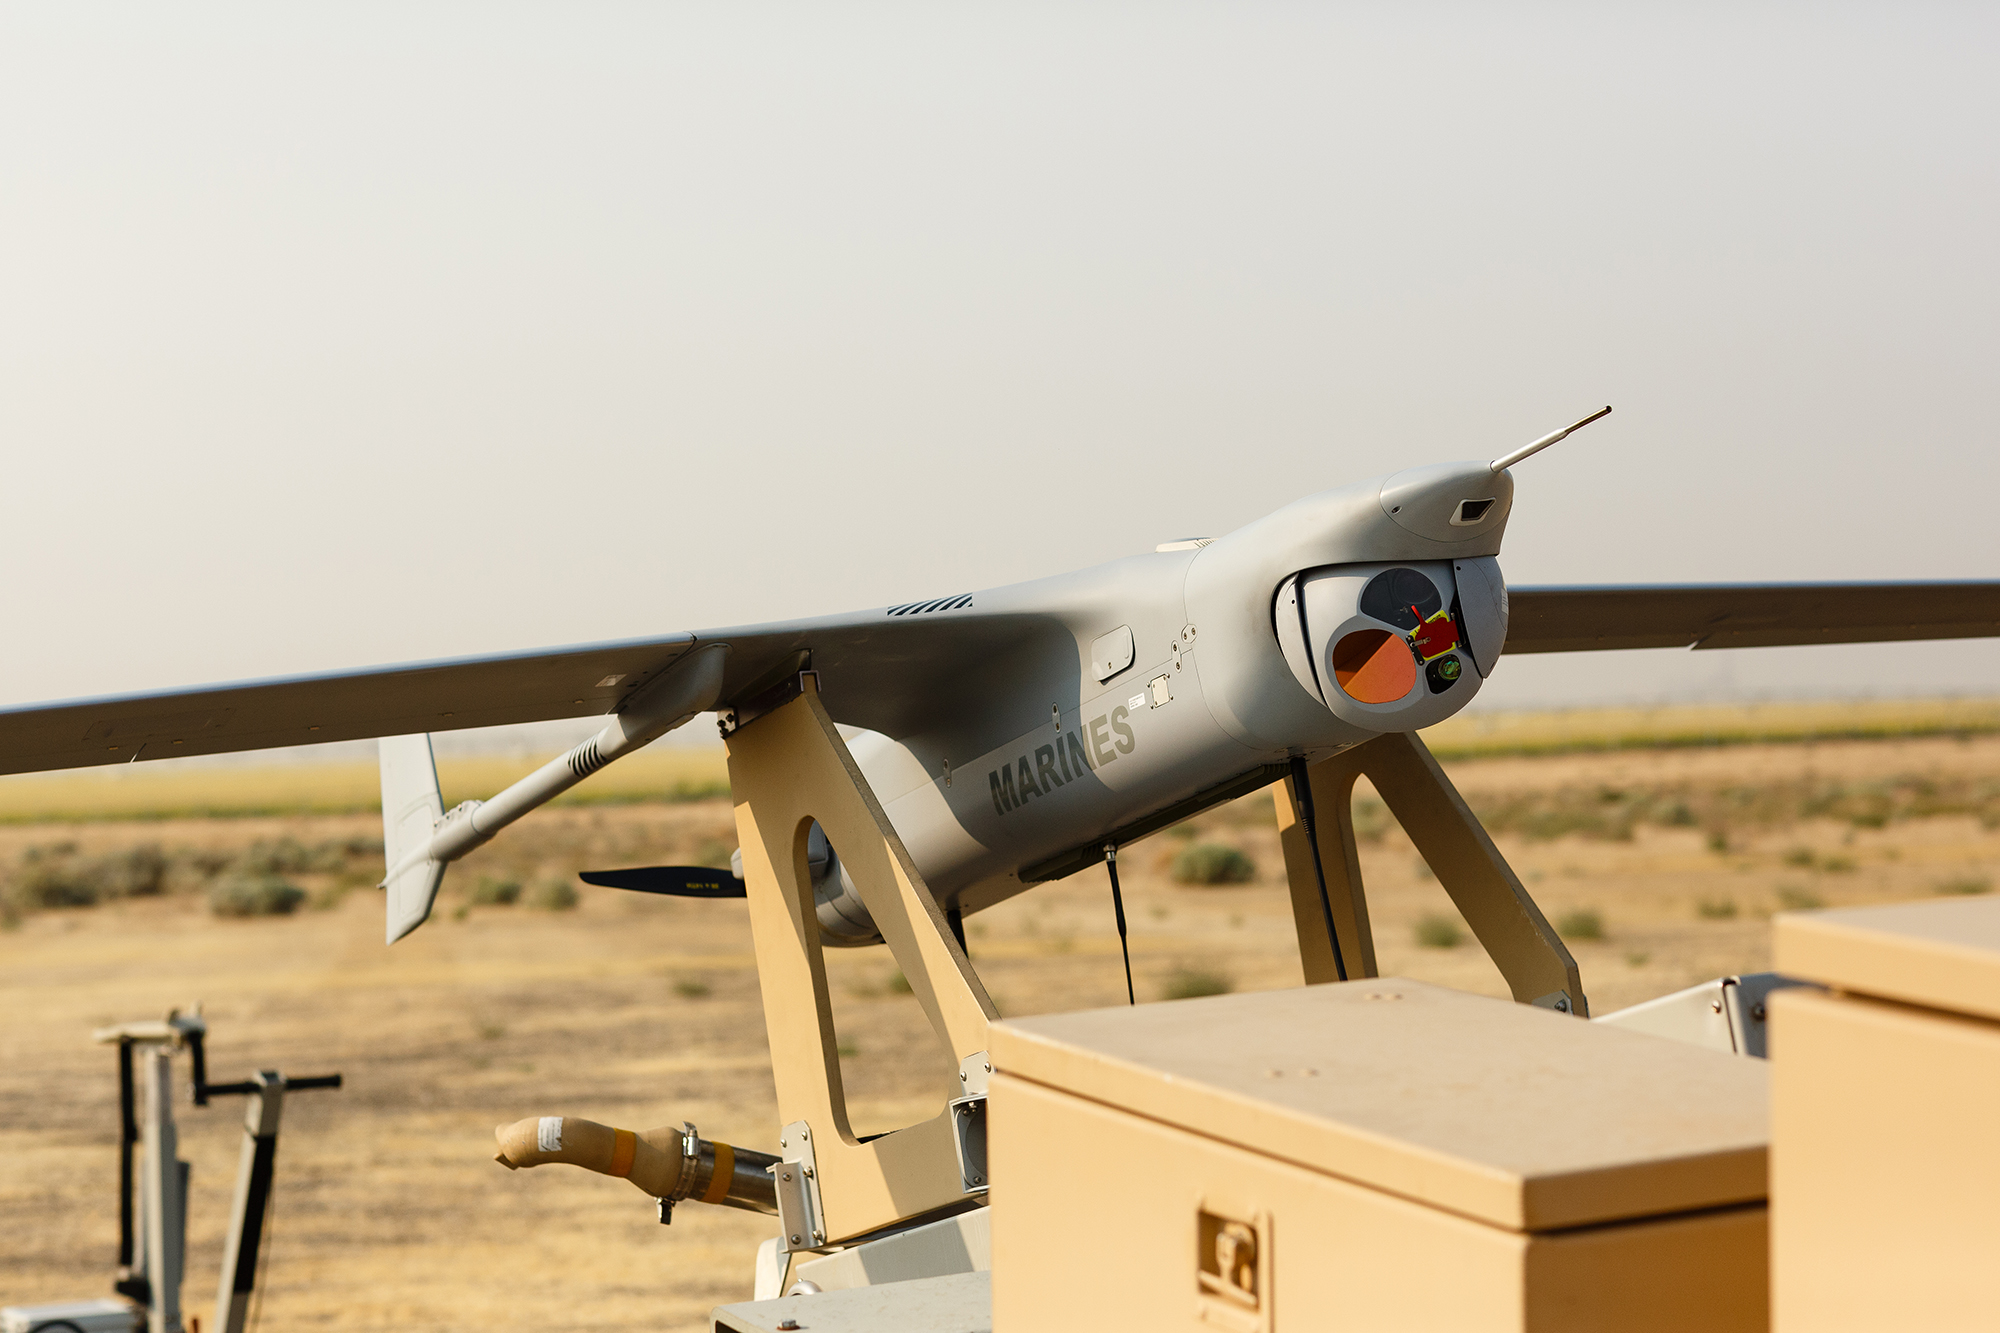 RQ-21A Blackjack on the Launcher